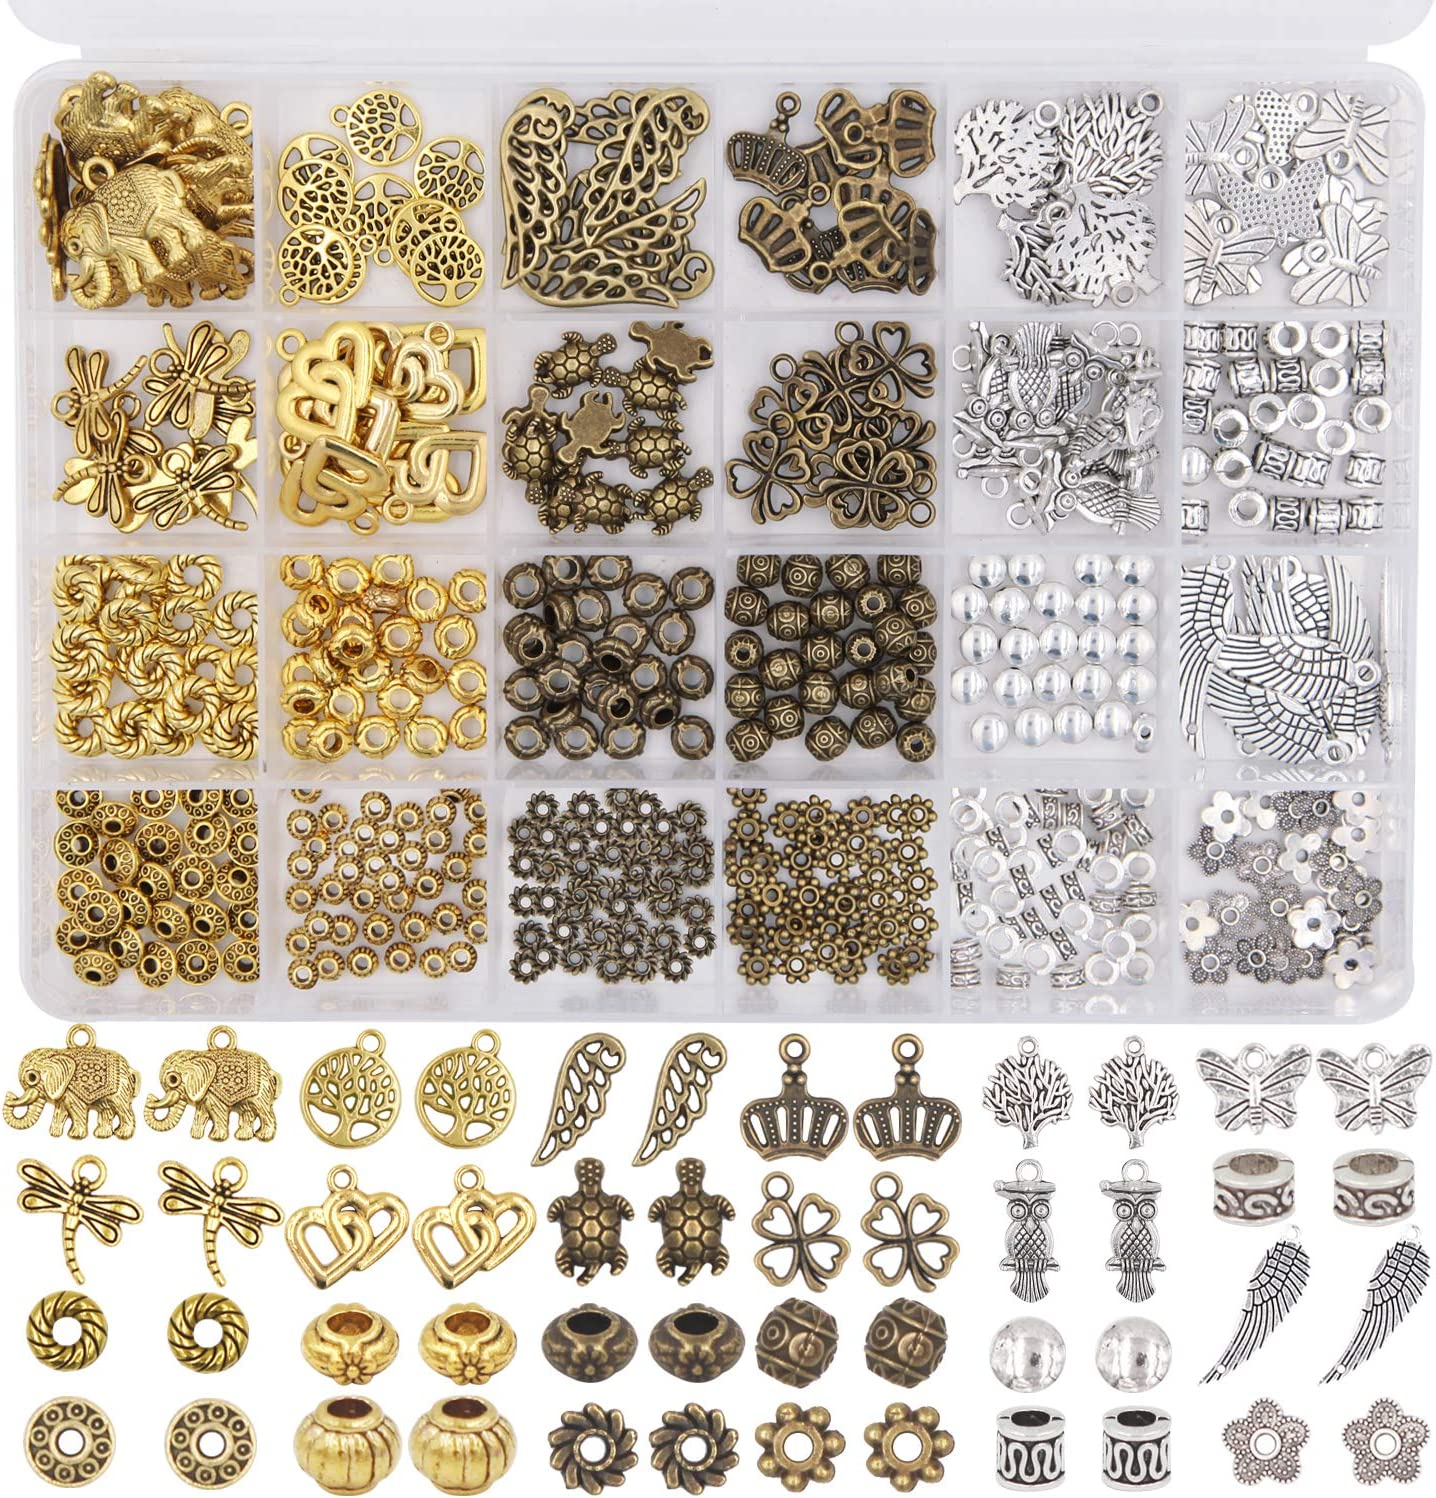 60 Patterns Tibetan Silver Metal Charms Loose Spacer Beads Wholesale Jewelry